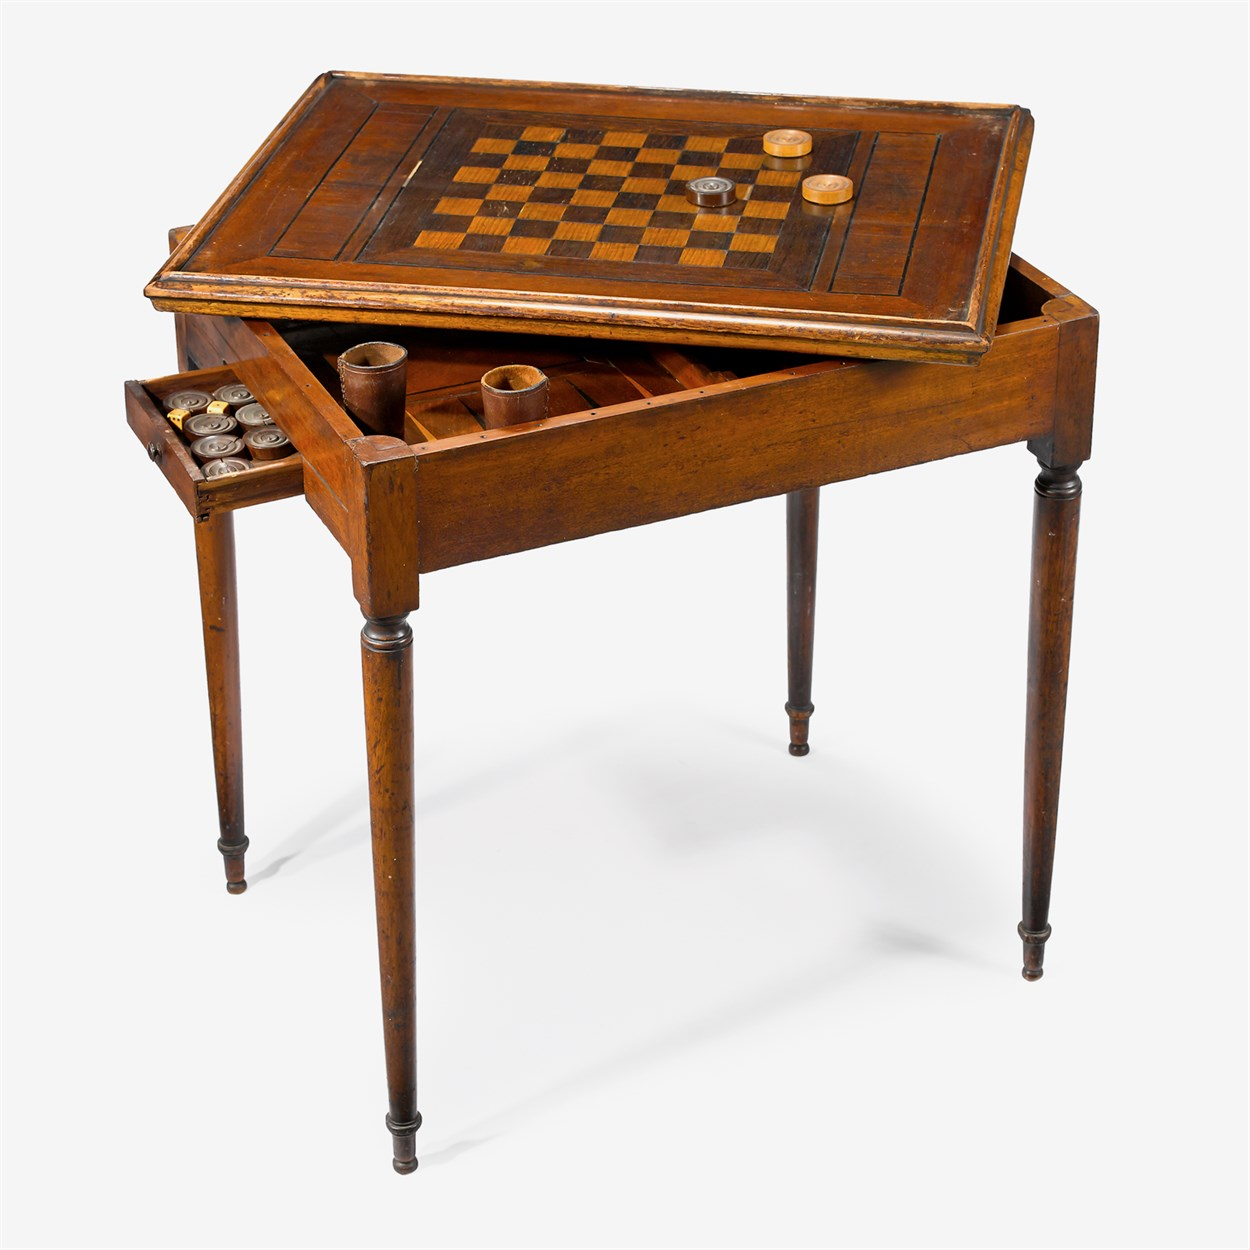 Lot 51 - Federal inlaid games table